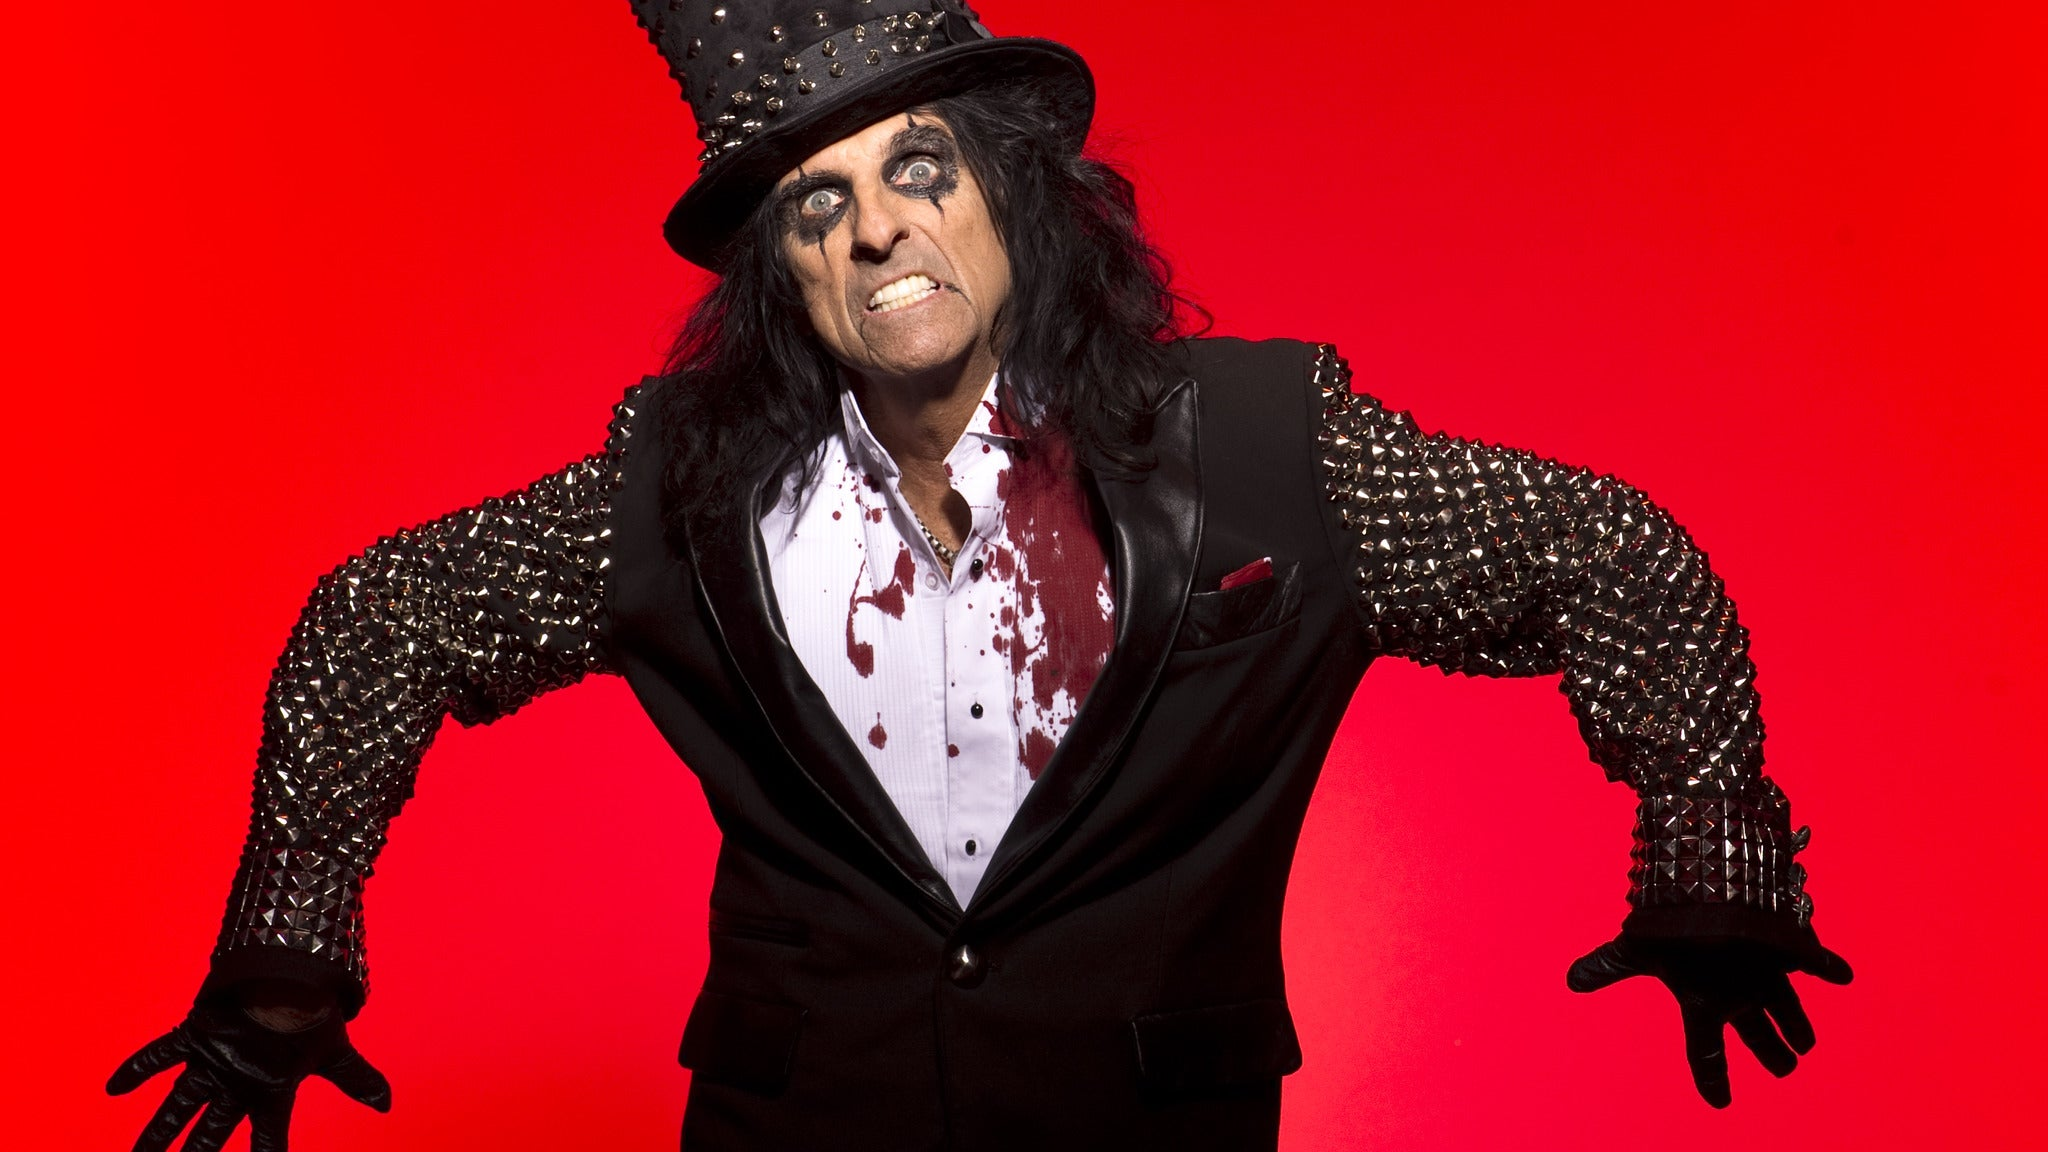 Alice Cooper at King Performing Arts Center